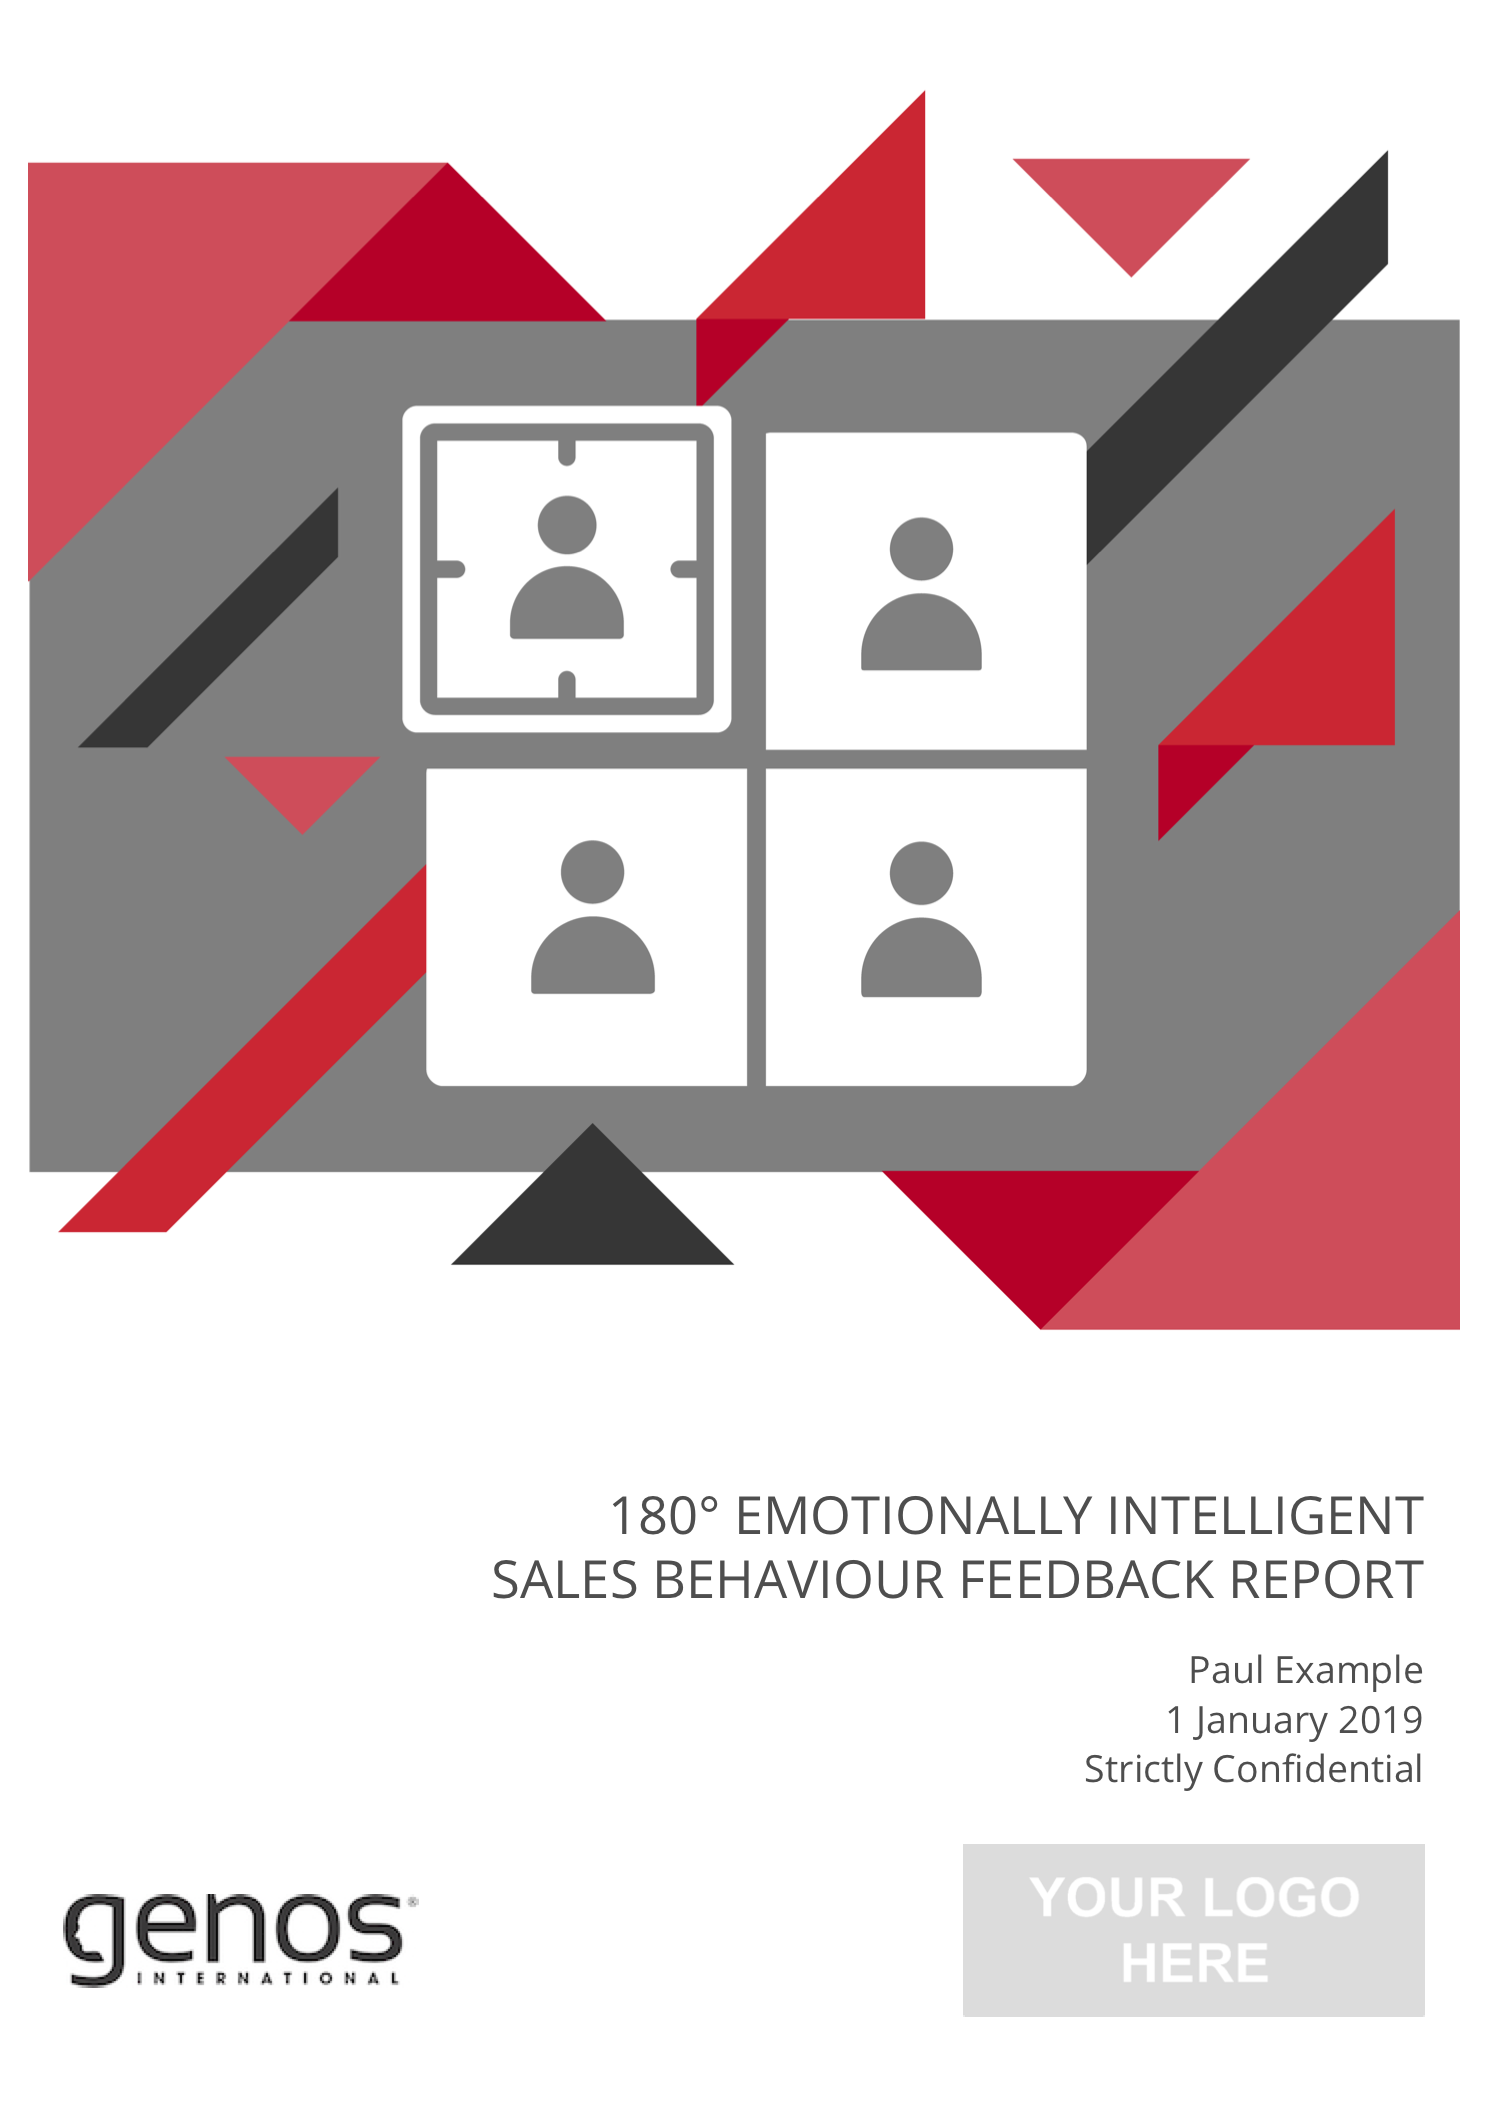 180° EI Sales Behaviour Feedback Report